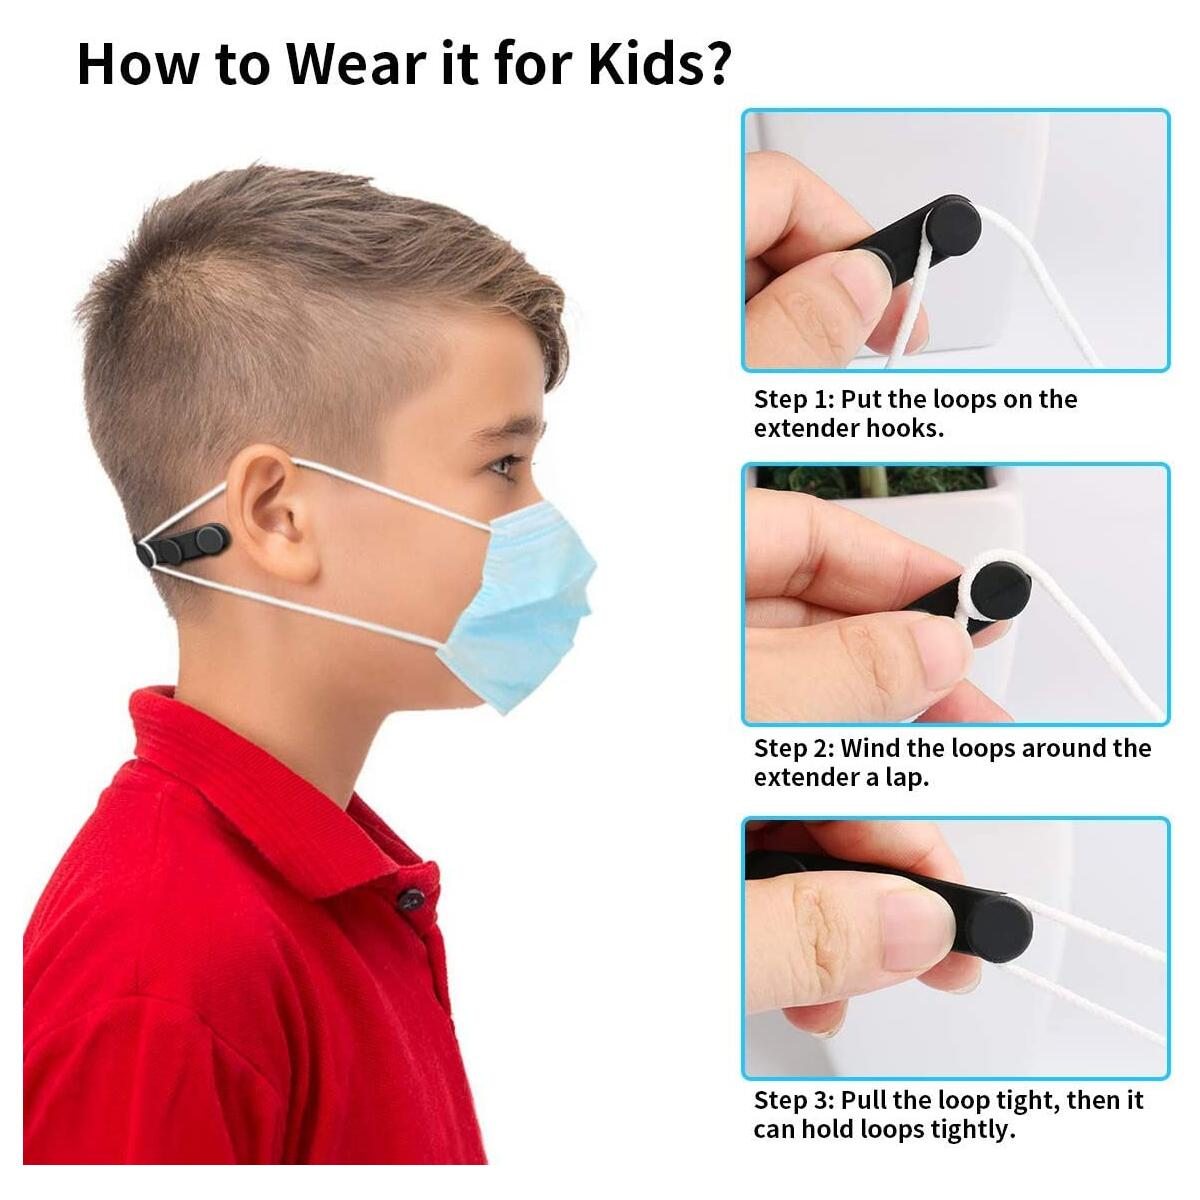 Silicone Mask Strap Extender with Buttons, 10pcs Adjustable Anti-Slip Mask Extender, Relieve Ear Pain, Anti-Tightening Soft Ear Saver Protector, Elastic Ear Strap Hook Holder for Kids & Adults - Black